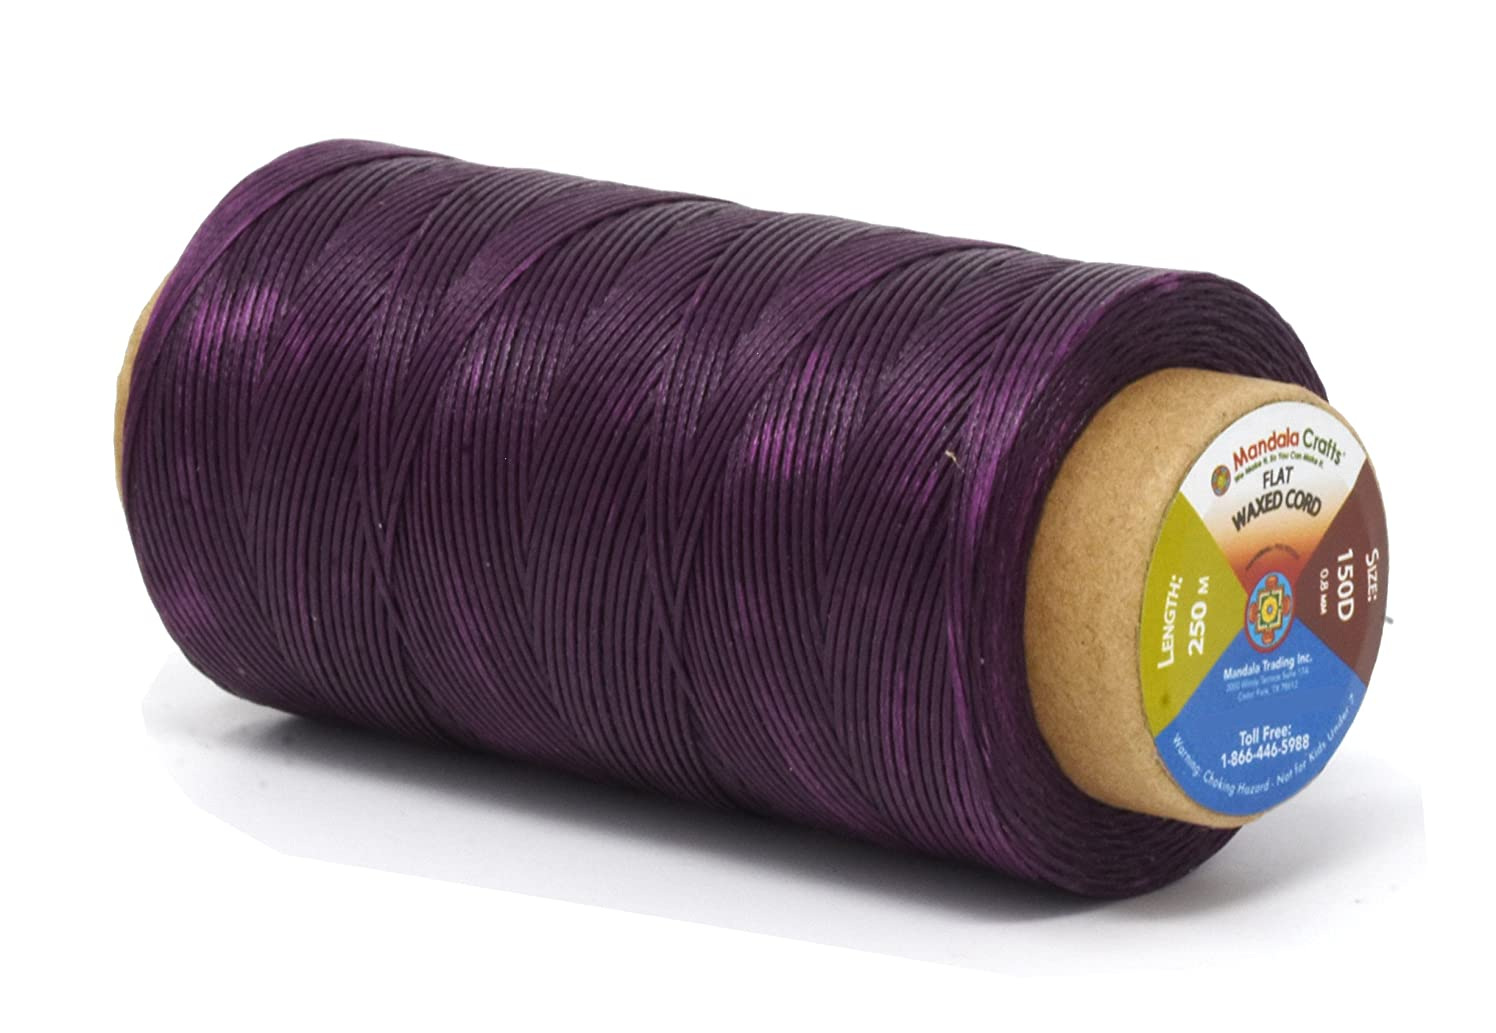 Mandala Crafts 150D 210D 0.8mm 1mm Leather Sewing Stitching Flat Waxed Thread String Cord (150D 0.8mm 250M, Purple)